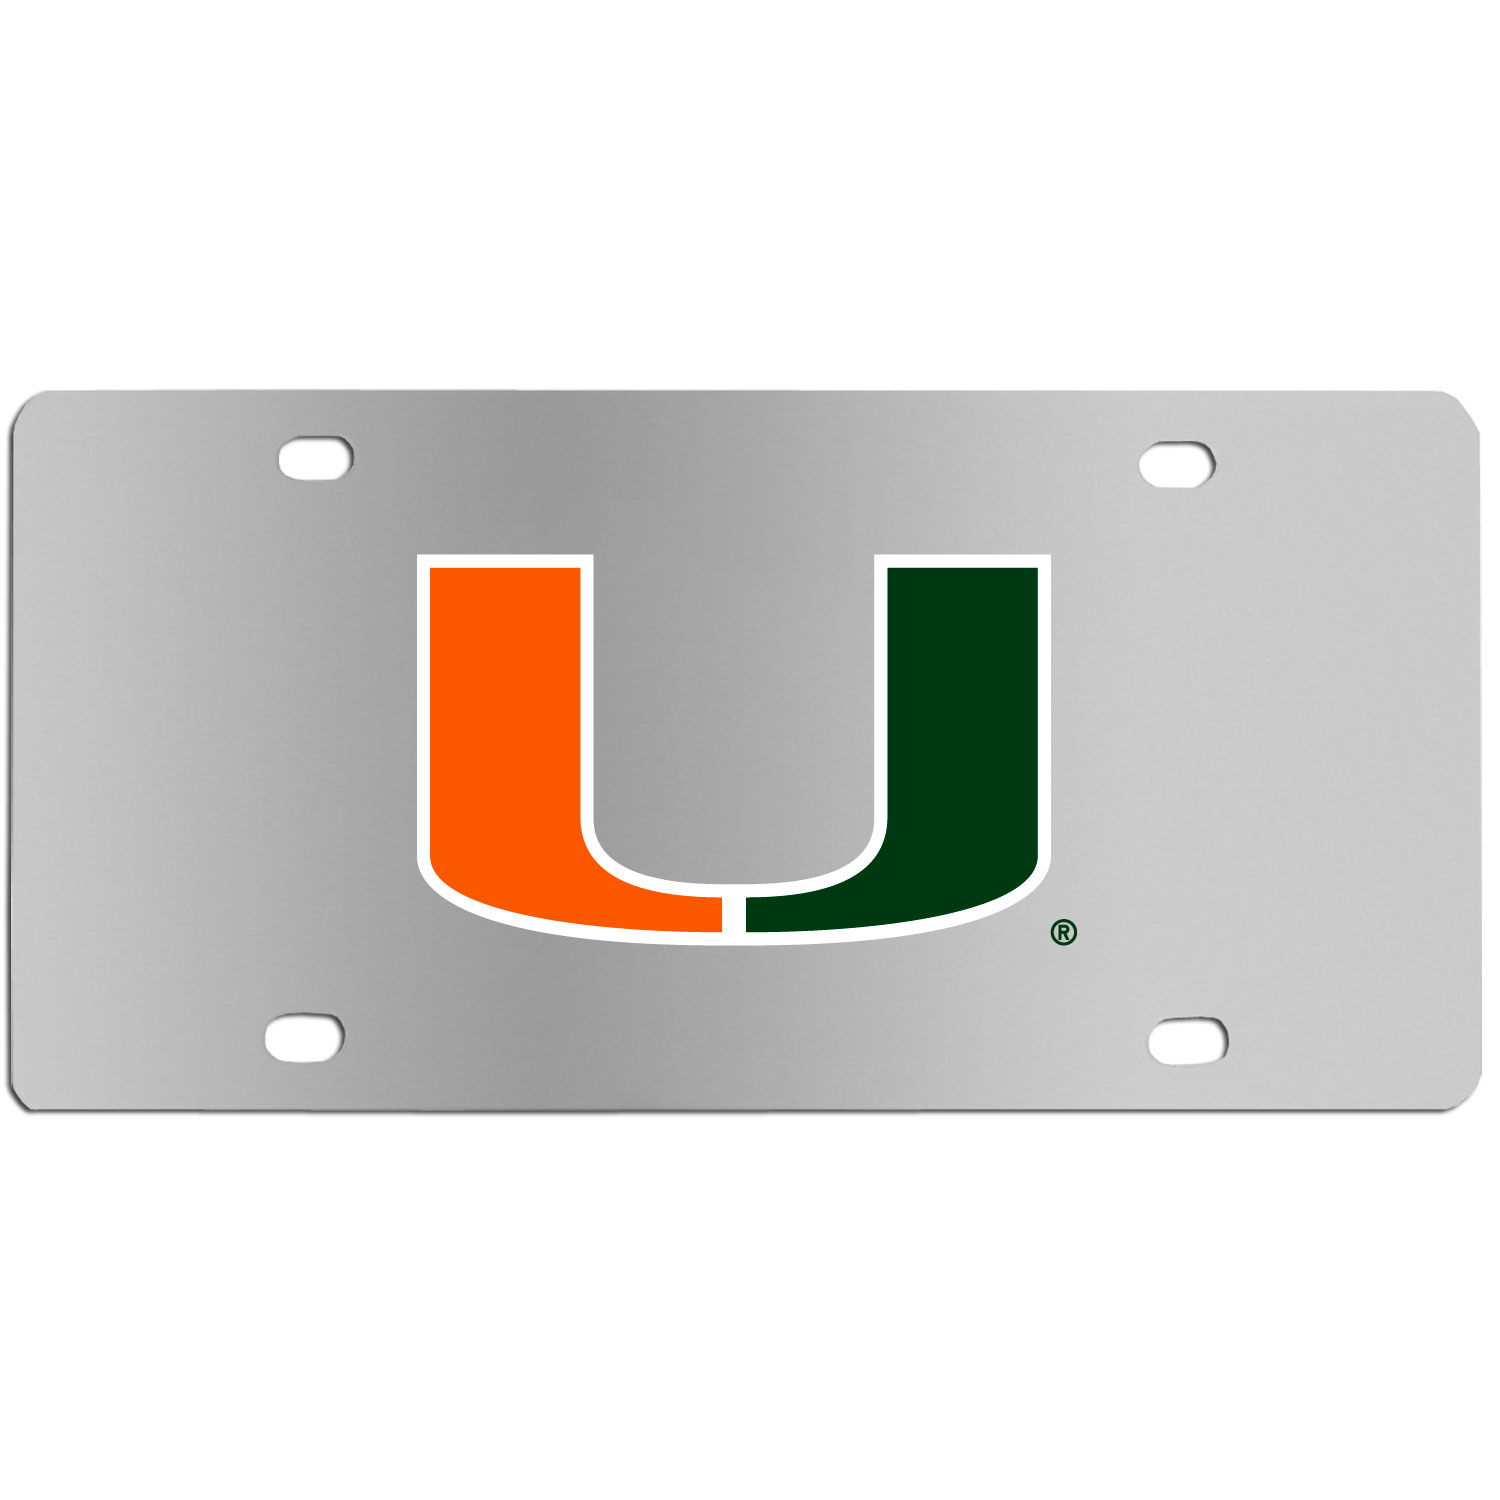 Miami Hurricanes Steel License Plate Wall Plaque - This high-quality stainless steel license plate features a detailed team logo on a the polished surface. The attractive plate is perfect for wall mounting in your home or office to become the perfect die-hard Miami Hurricanes fan decor.